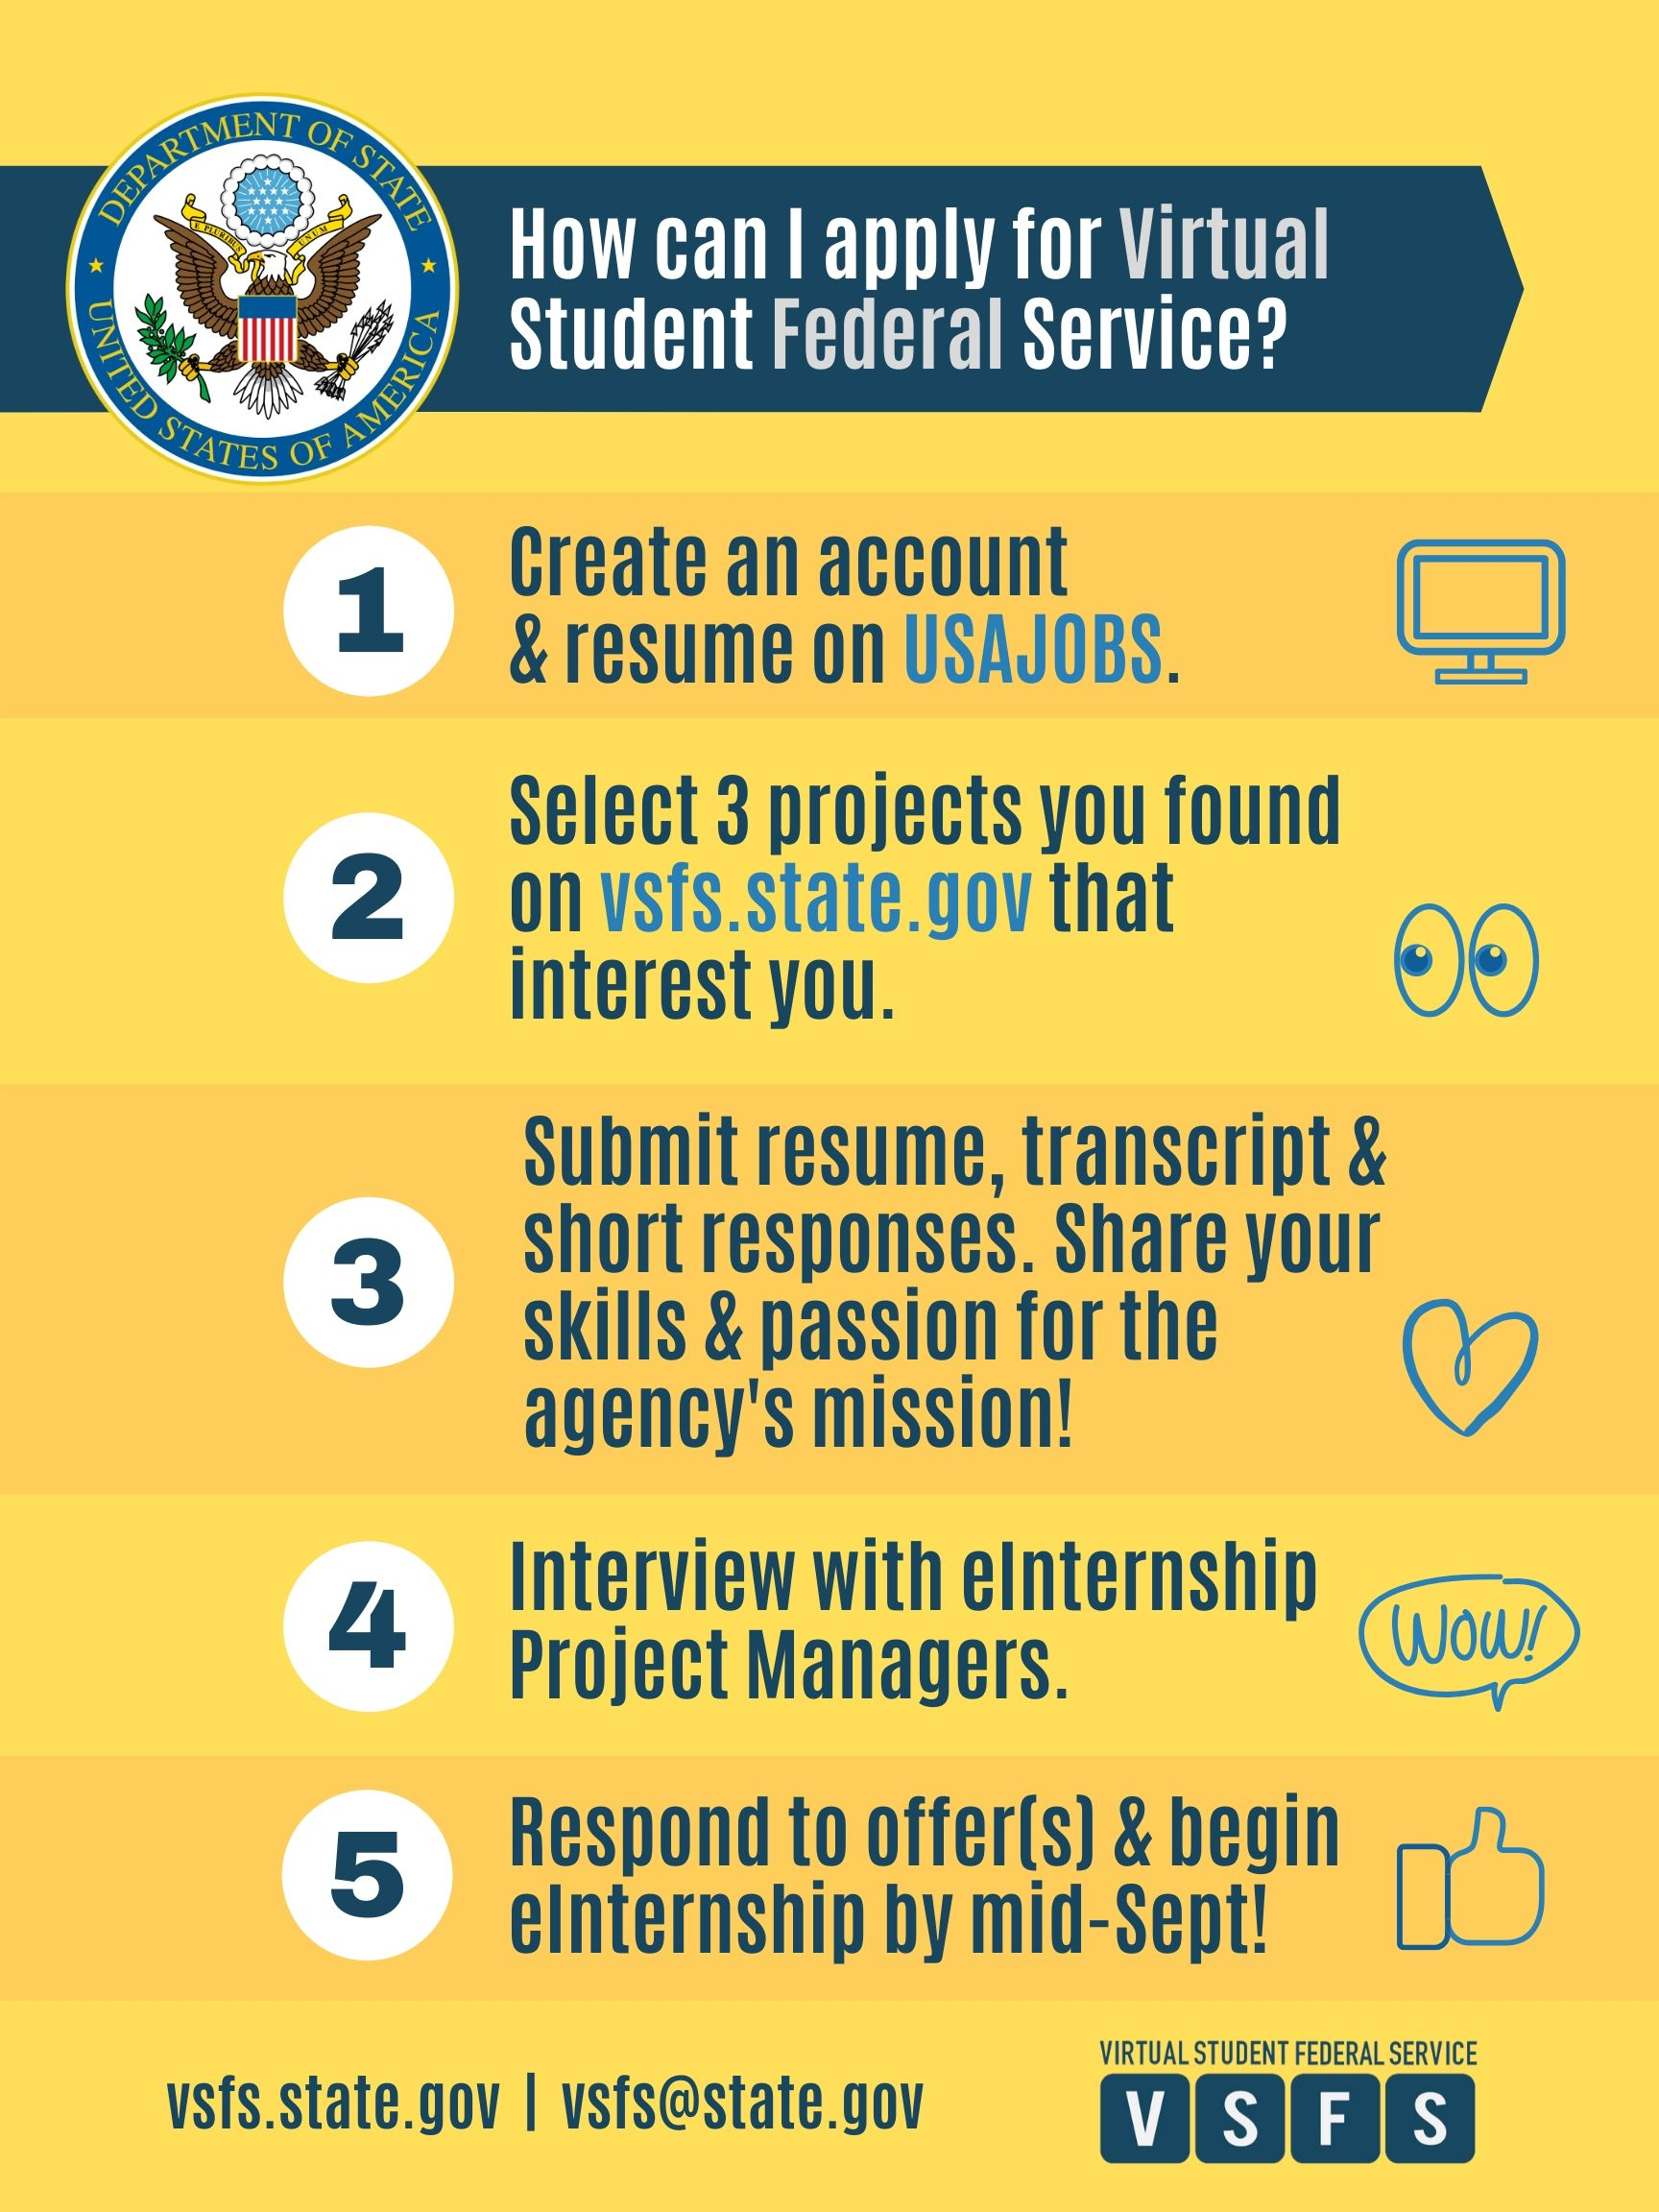 application process careers resume from usajobs vsfs infographic can apply data science Resume Download Resume From Usajobs